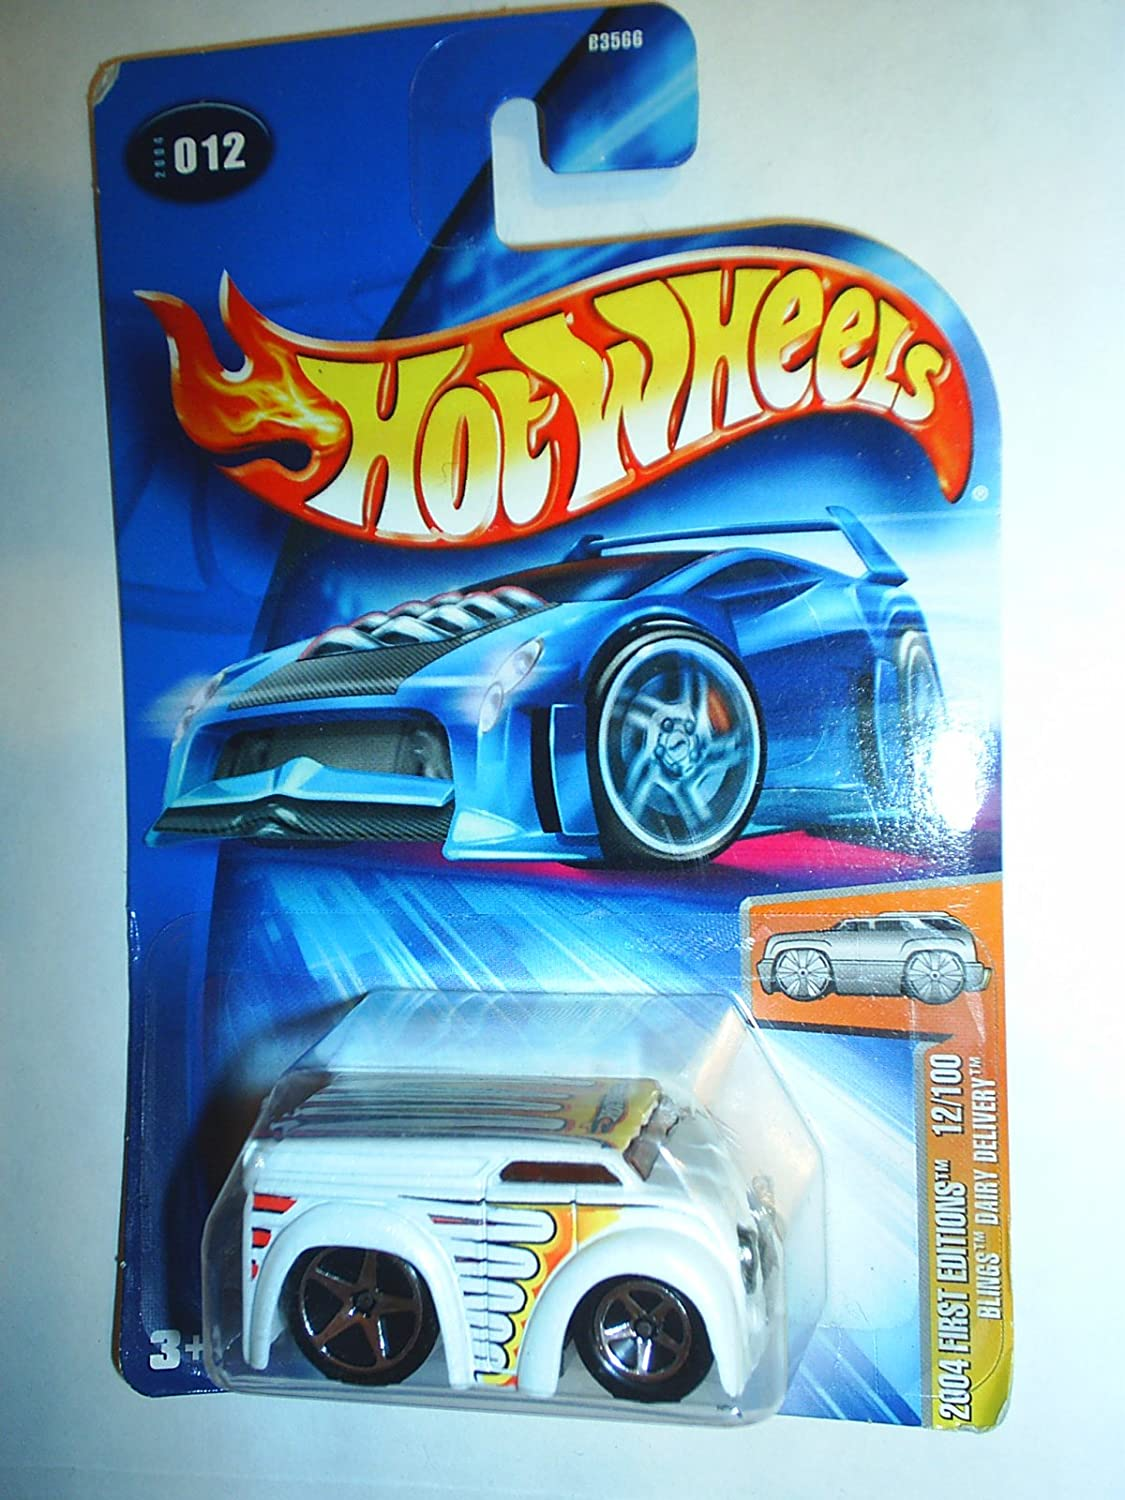 Mattel Hot Wheels 2004 First Editions 1 64 Scale White Bling Diary Delivery 12 100 Die Cast Car  012